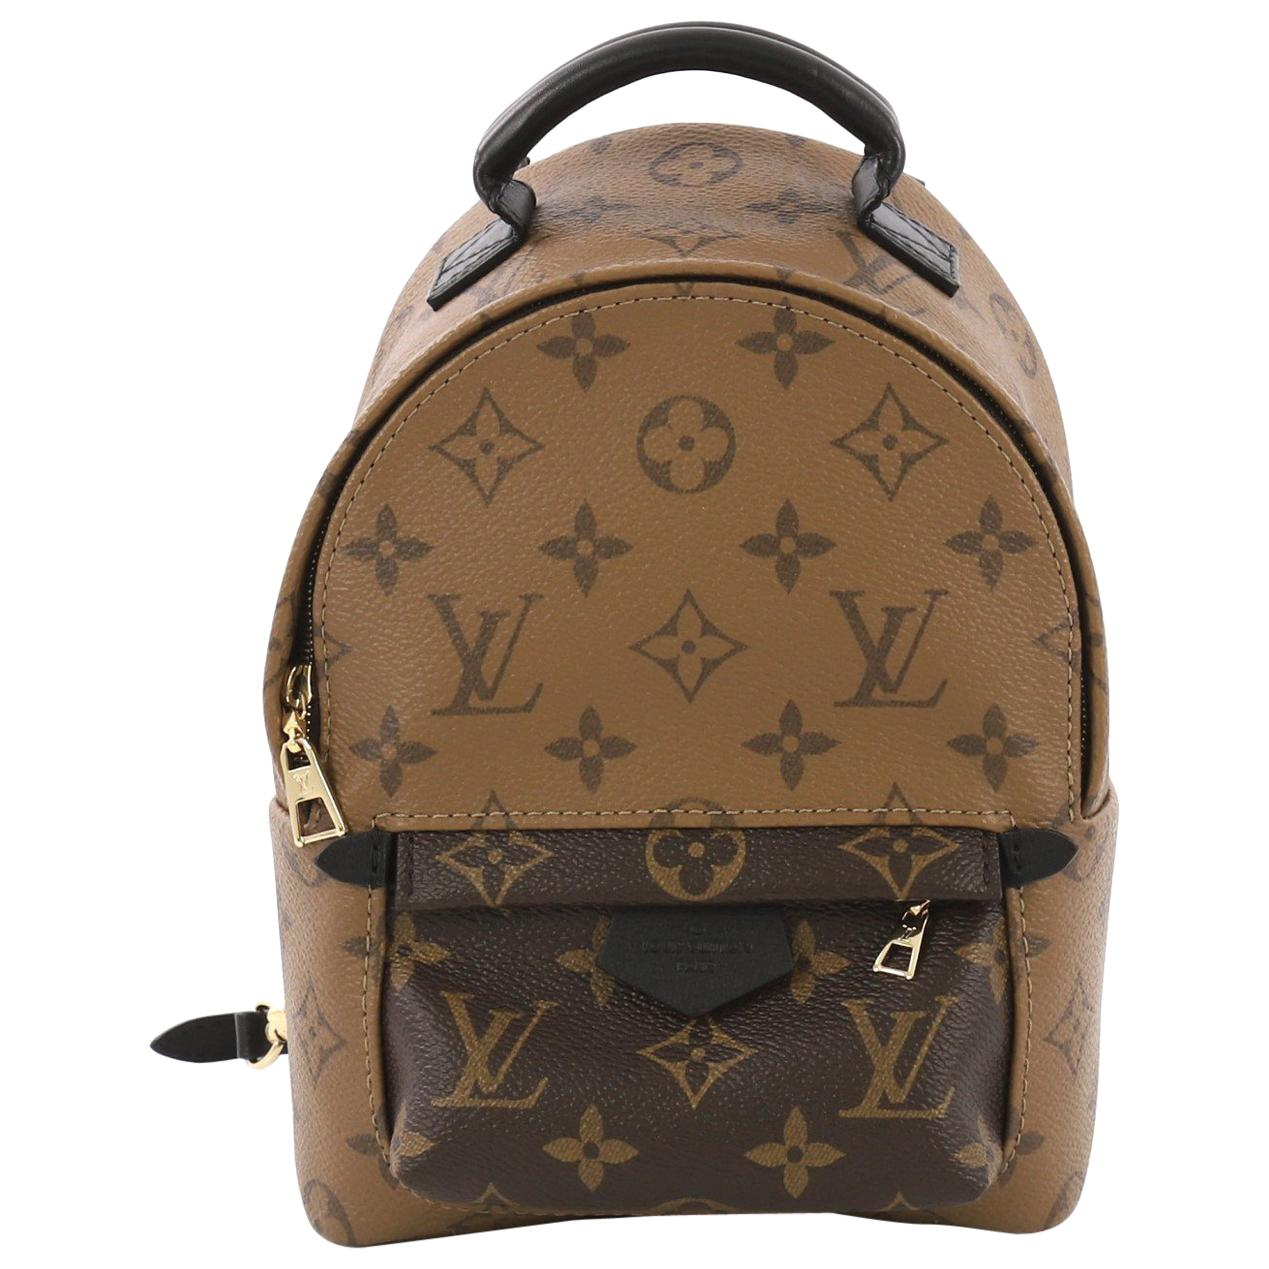 23c06a6223e1 Louis Vuitton Epi Beije Leather Backpack Satchel For Sale at 1stdibs